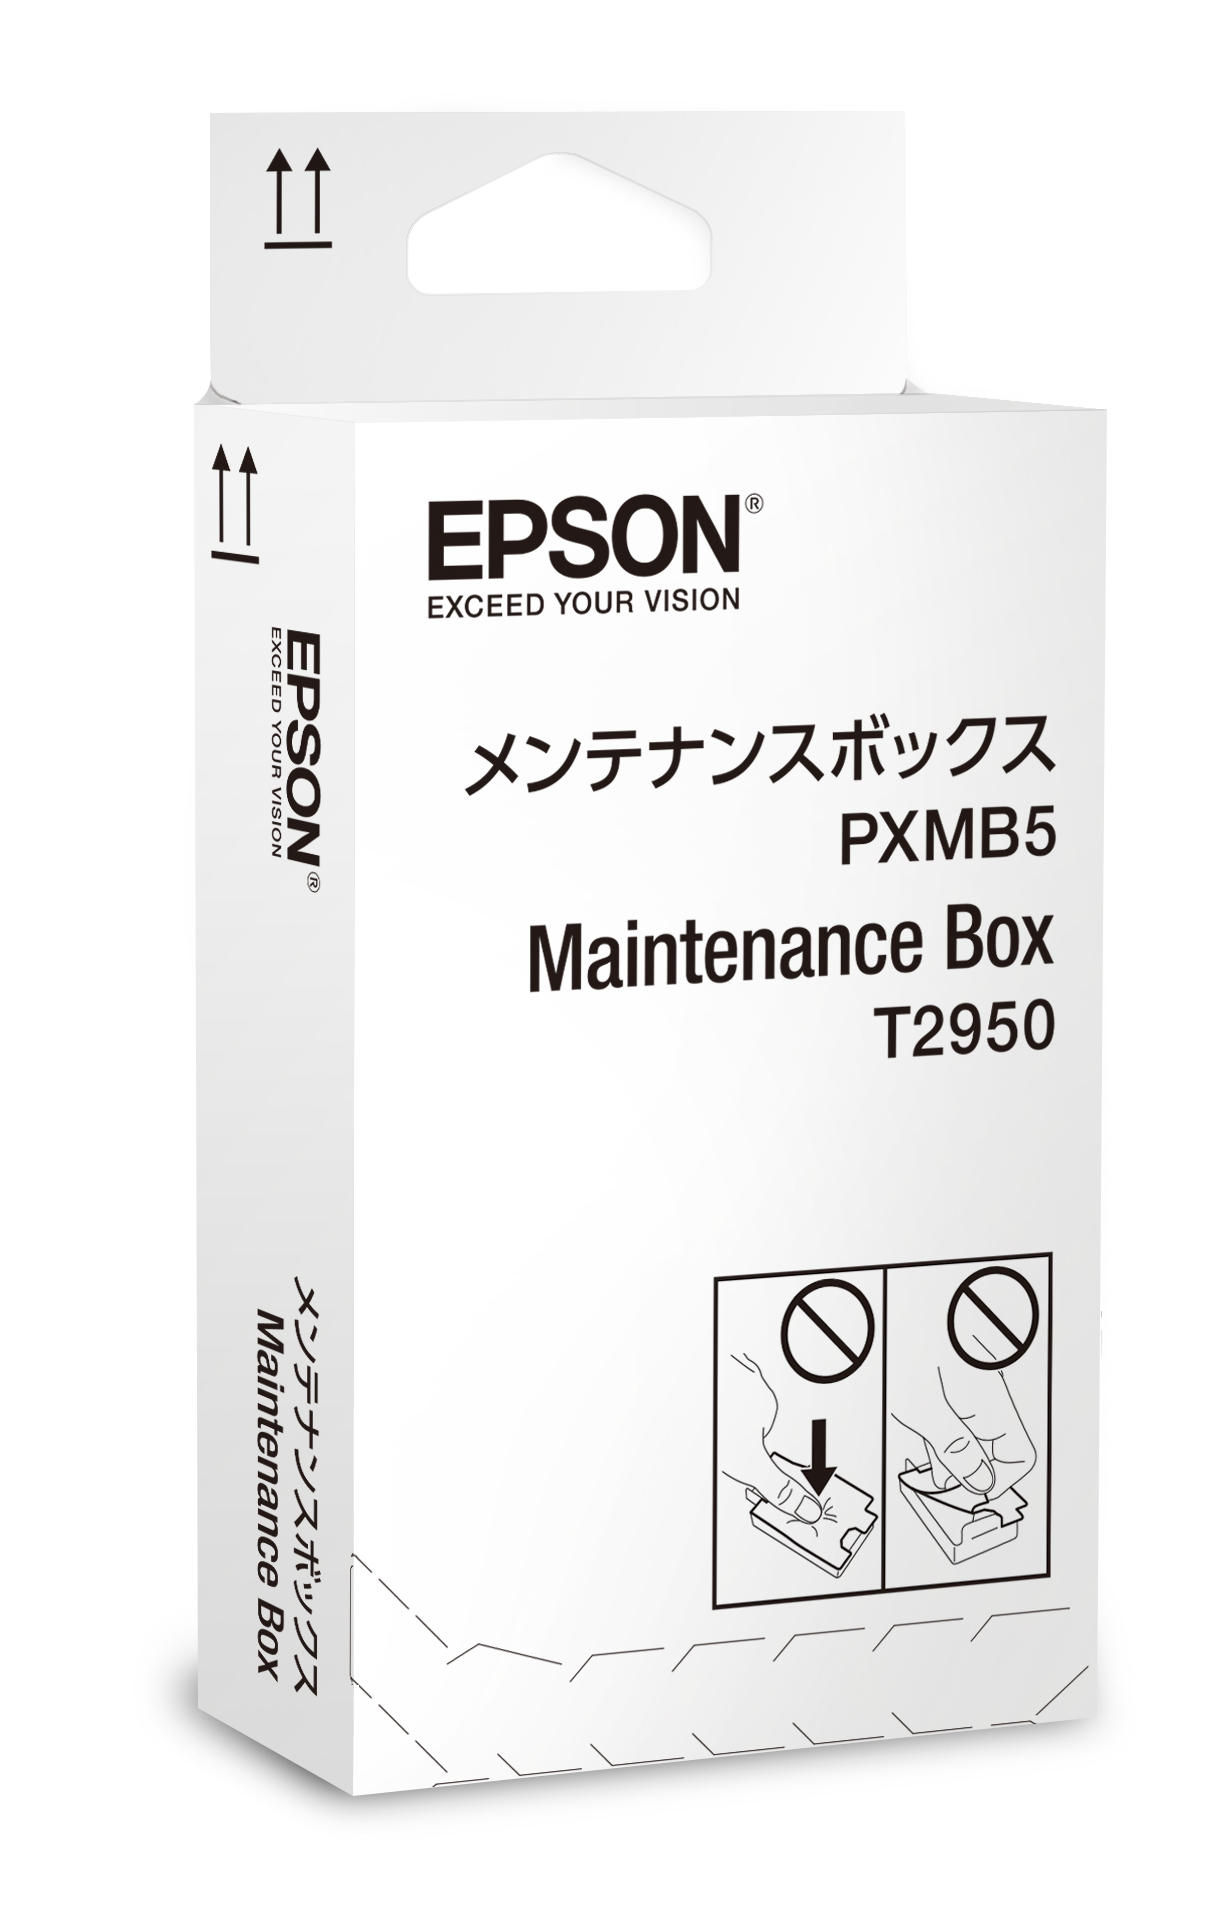 epson Wf100w Maintenance Box C13t295000 - AD01